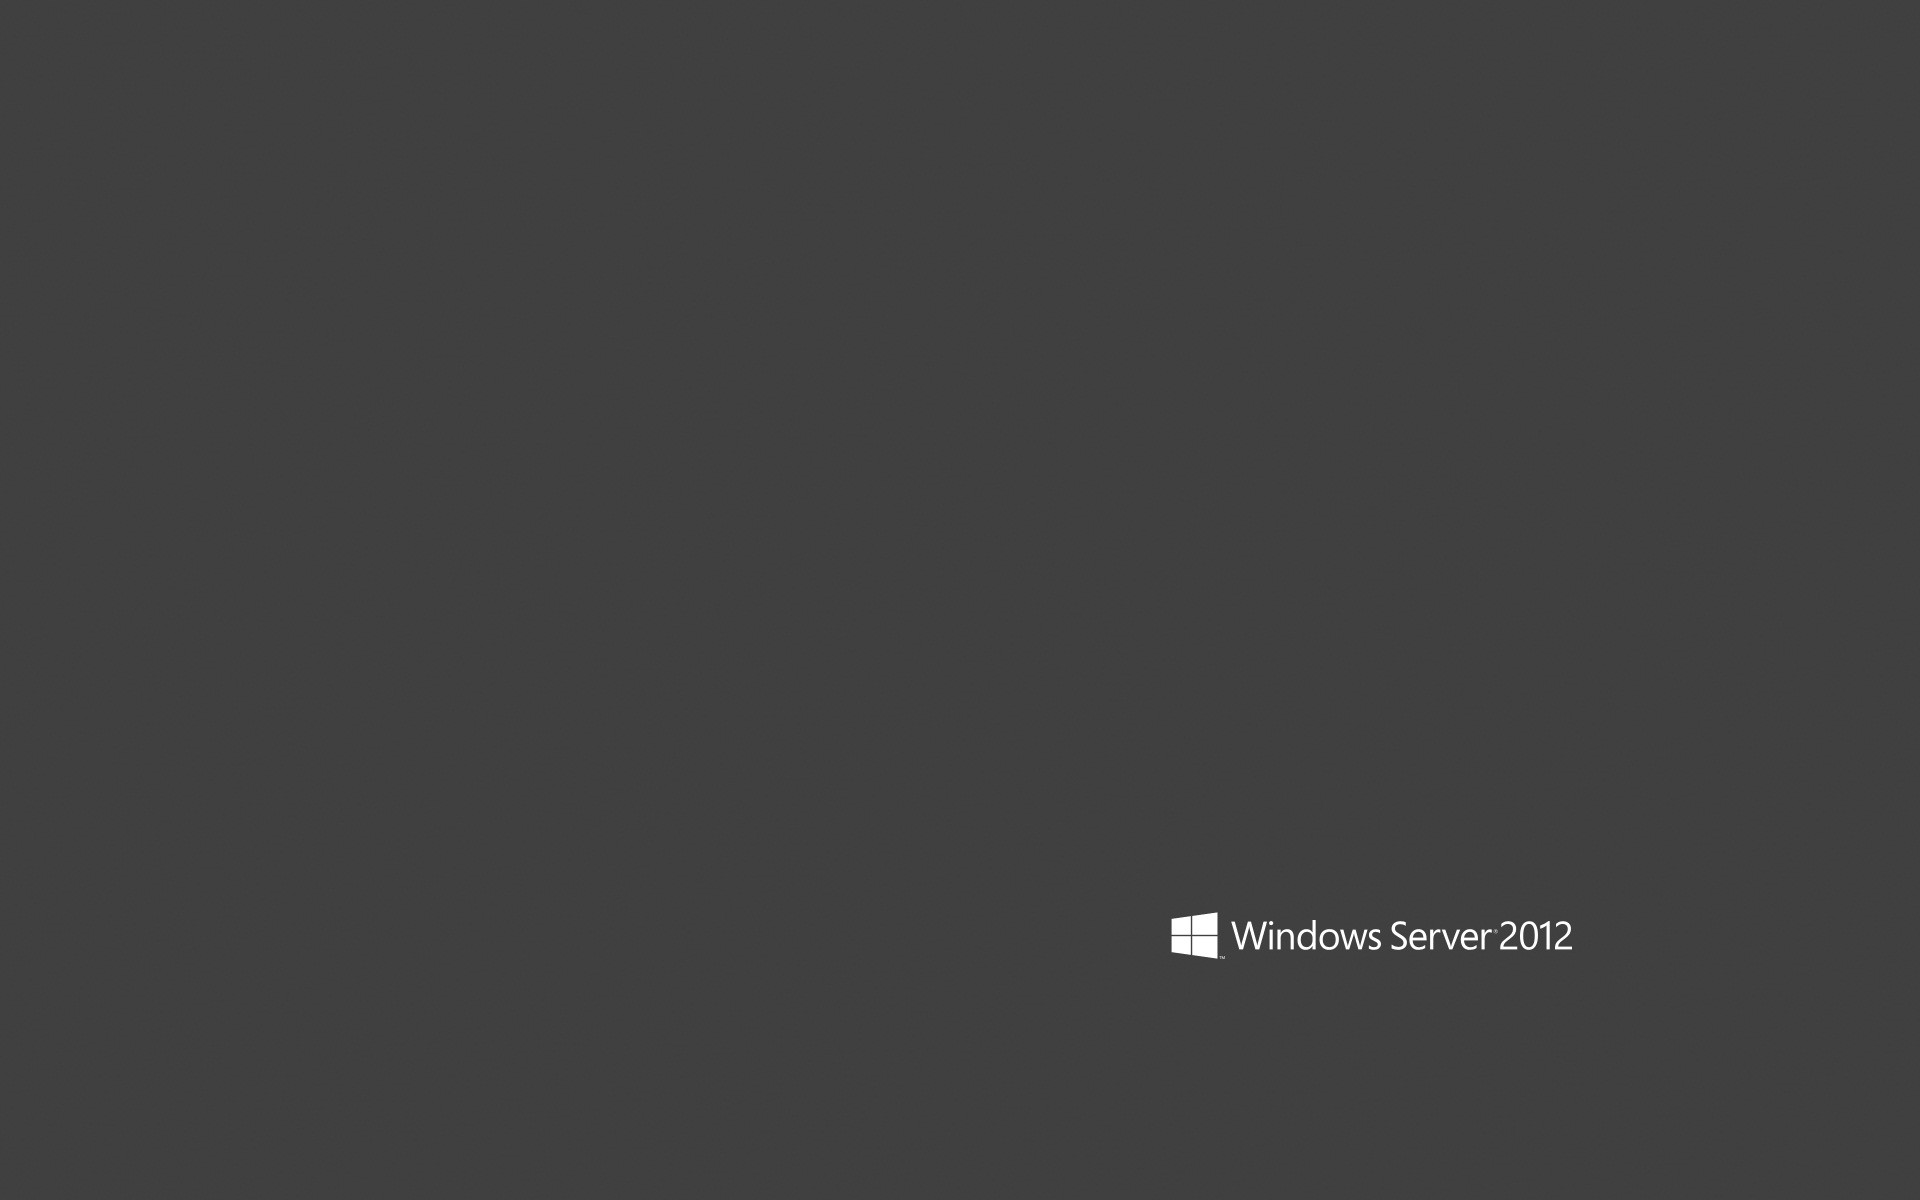 1920x1200 Windows Server 2012 Default Wallpaper by alexstrand7 on DeviantArt